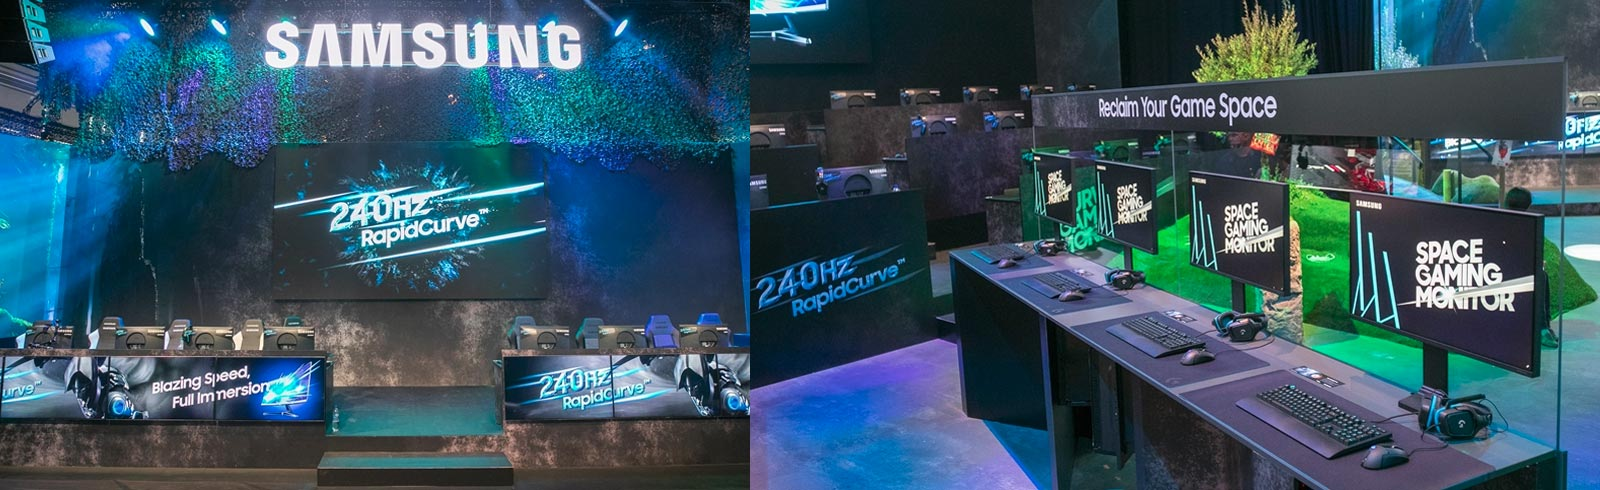 "Samsung showcases the 27"" CRG5, the 49"" CRG9 and the 32"" Space Gaming monitors at Gamescom 2019"